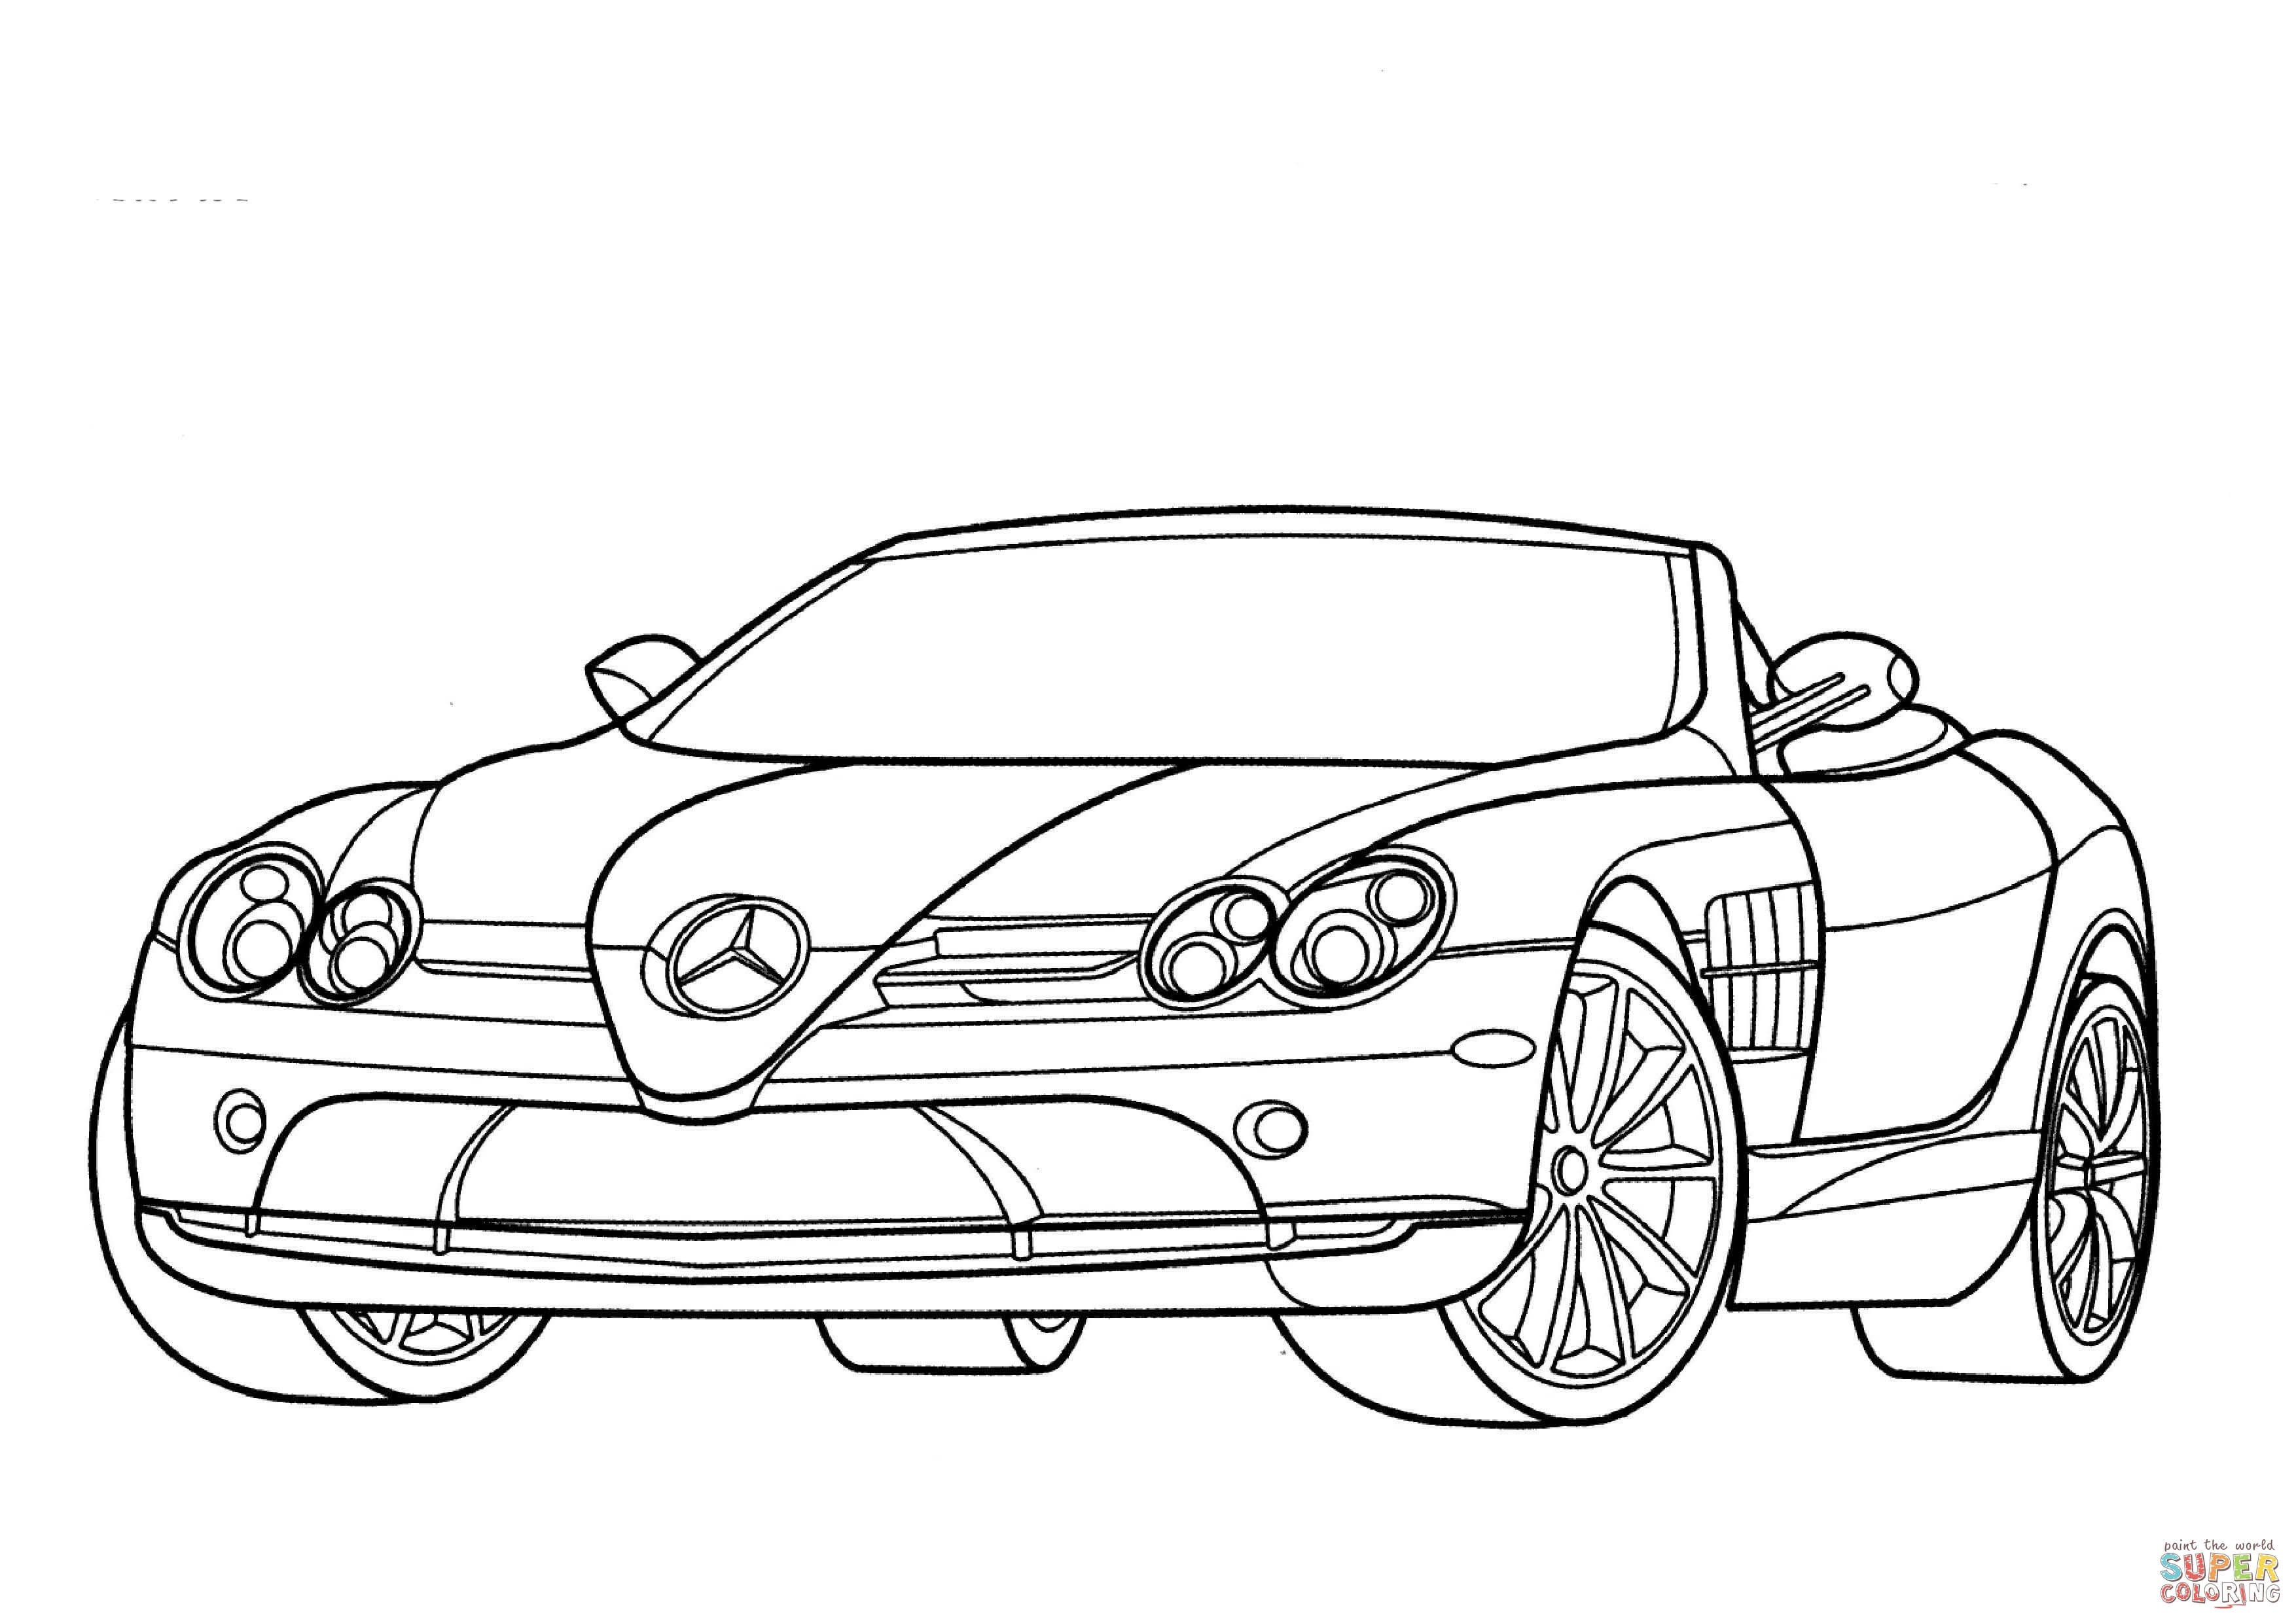 nissan gtr colouring pages nissan gtr coloring page free printable coloring pages colouring nissan pages gtr